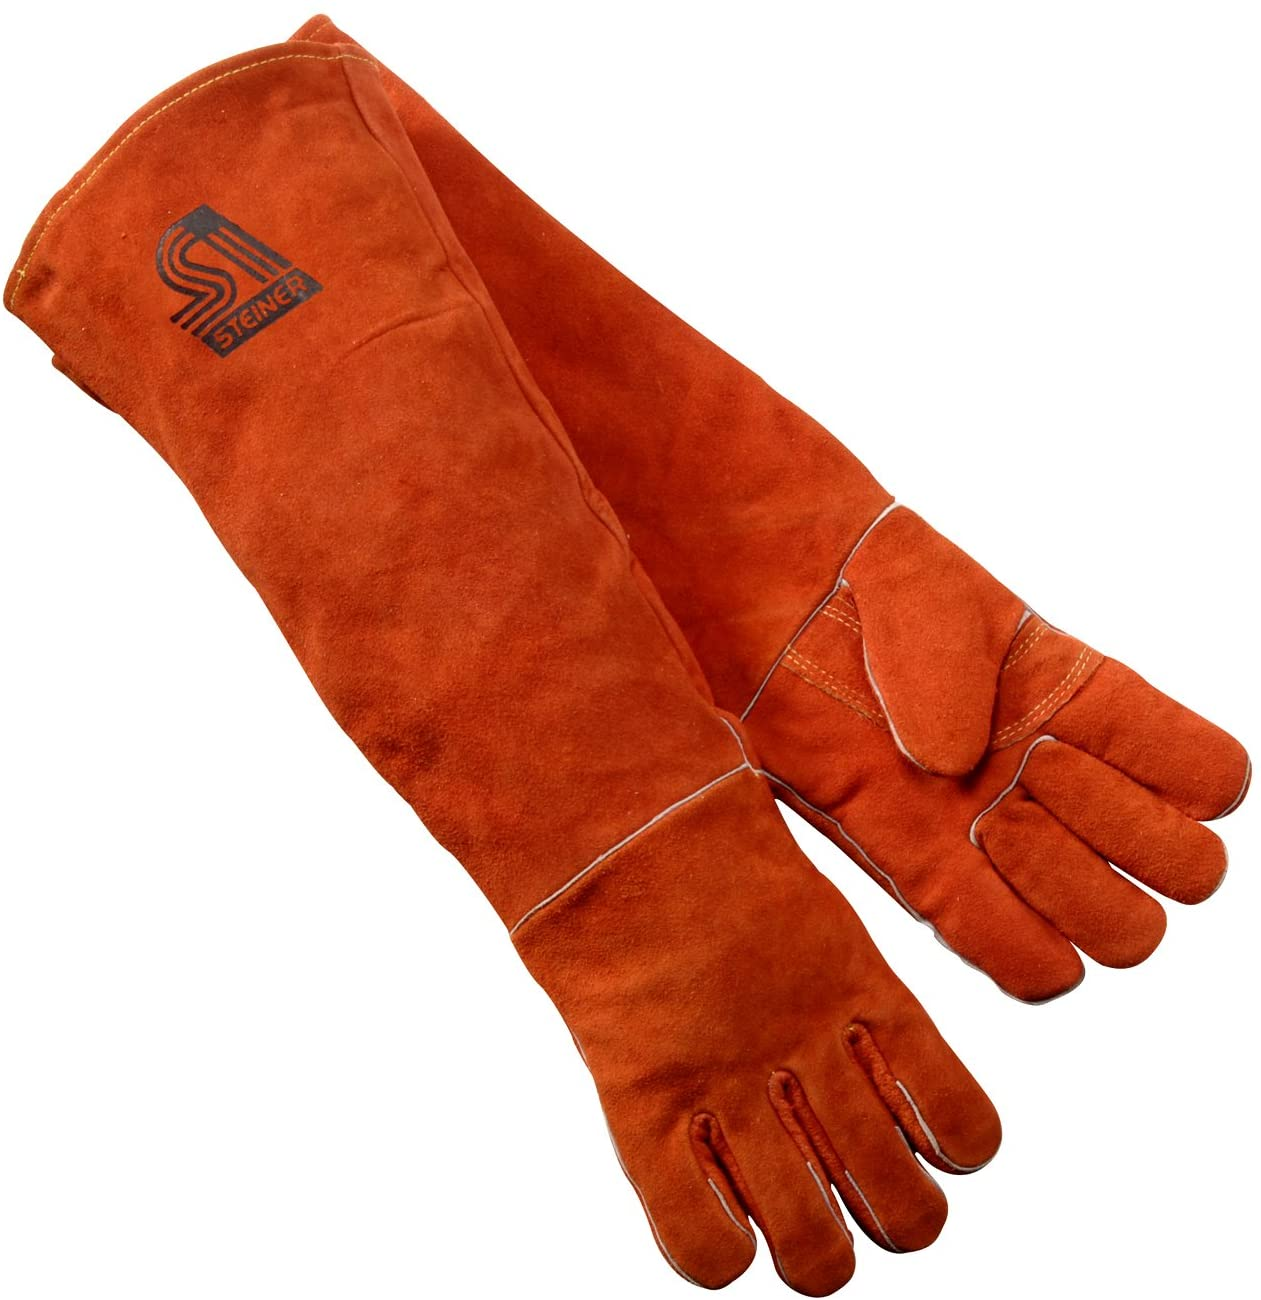 10 best welding gloves